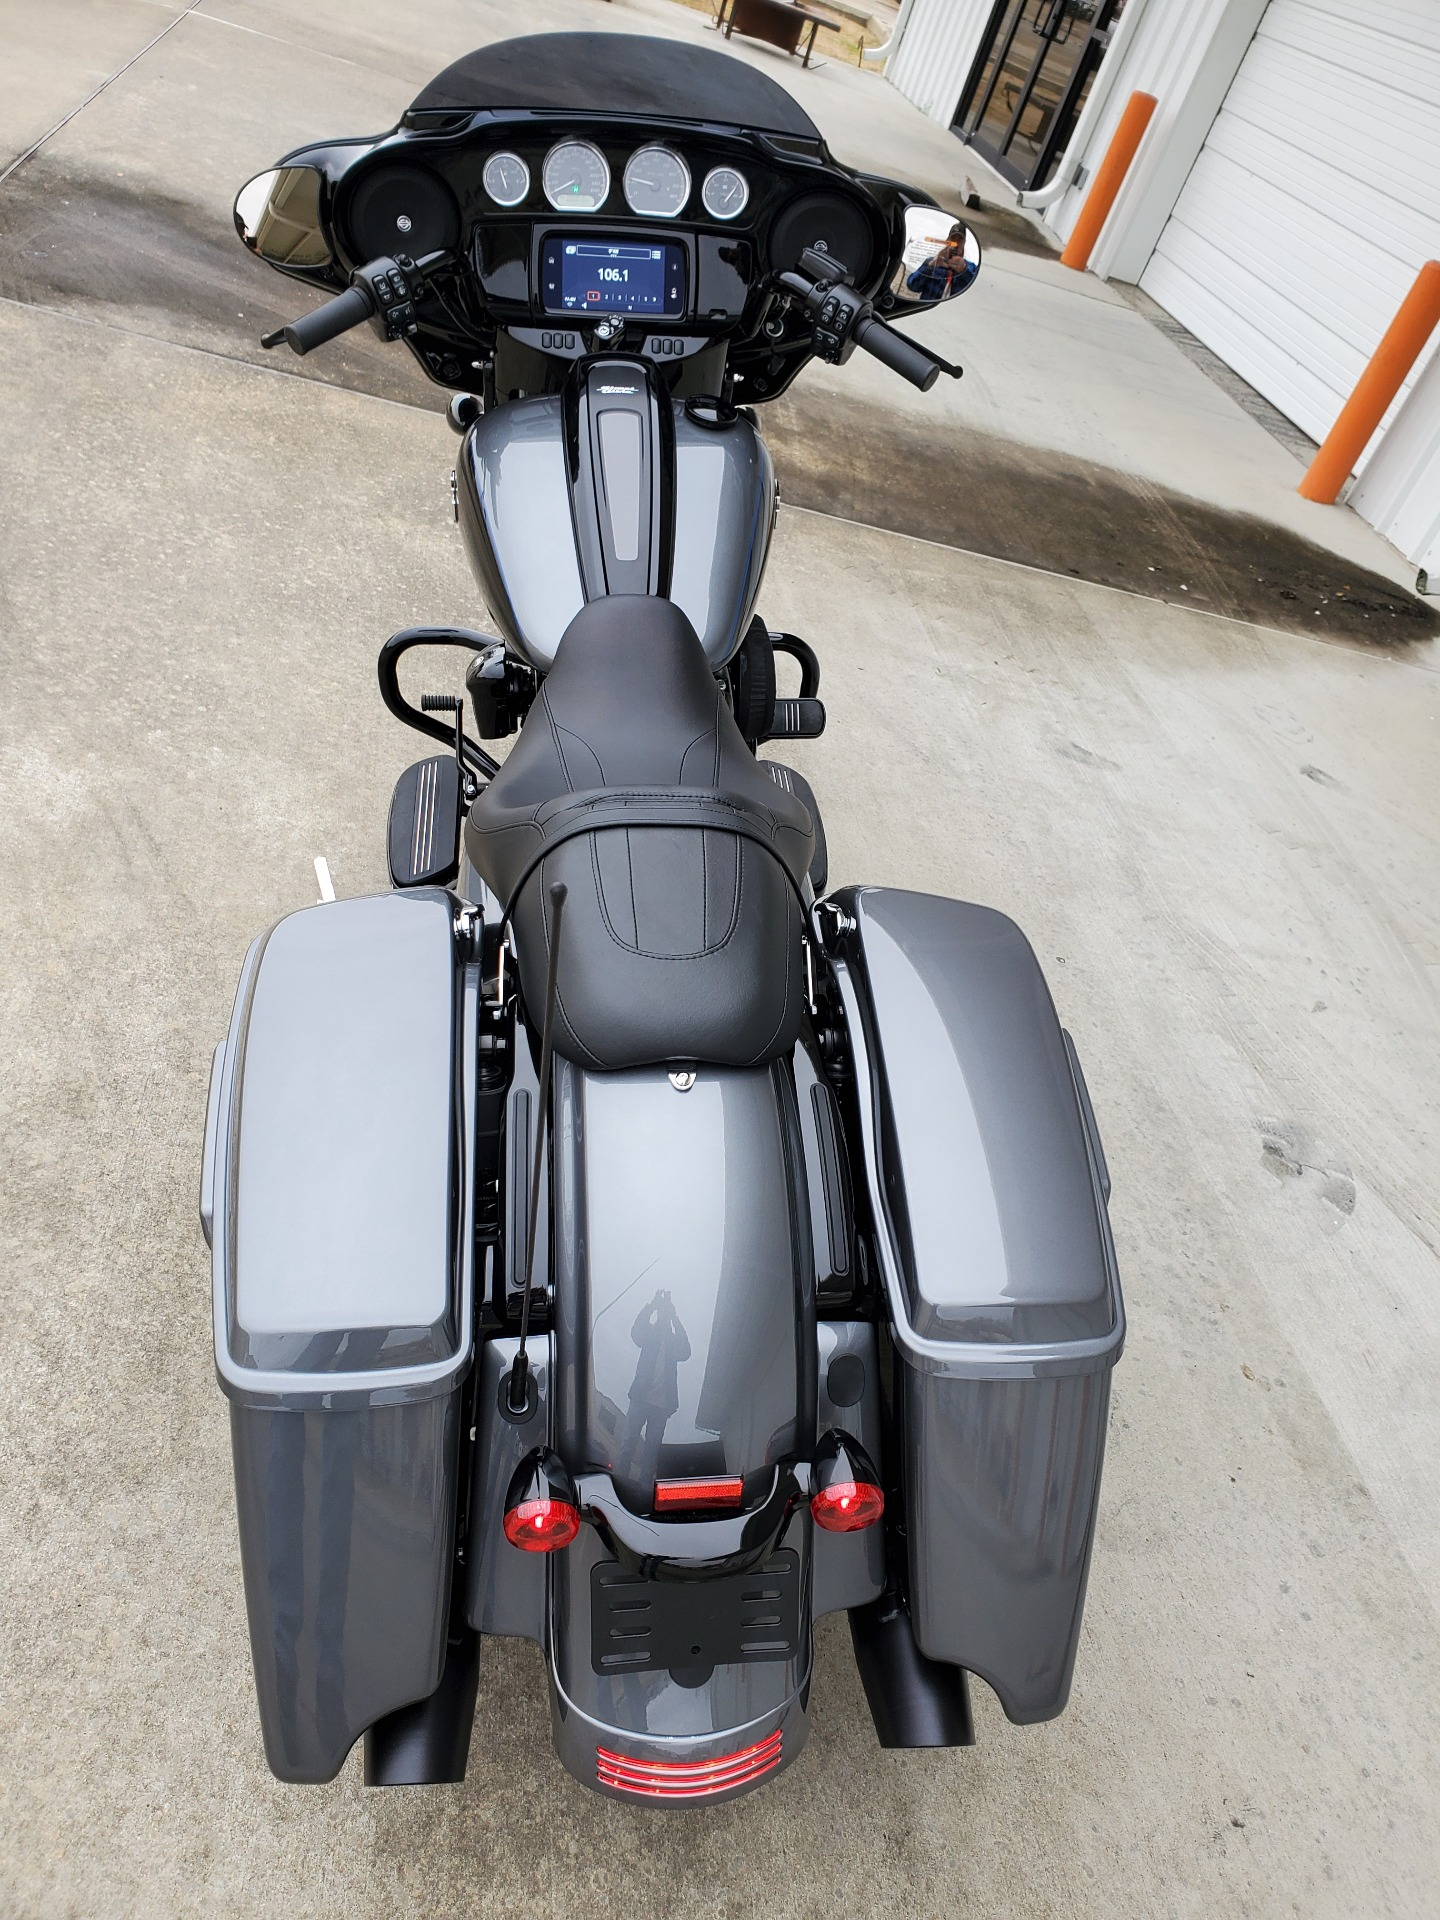 2021 Harley-Davidson Street Glide Special for sale near me - Photo 10